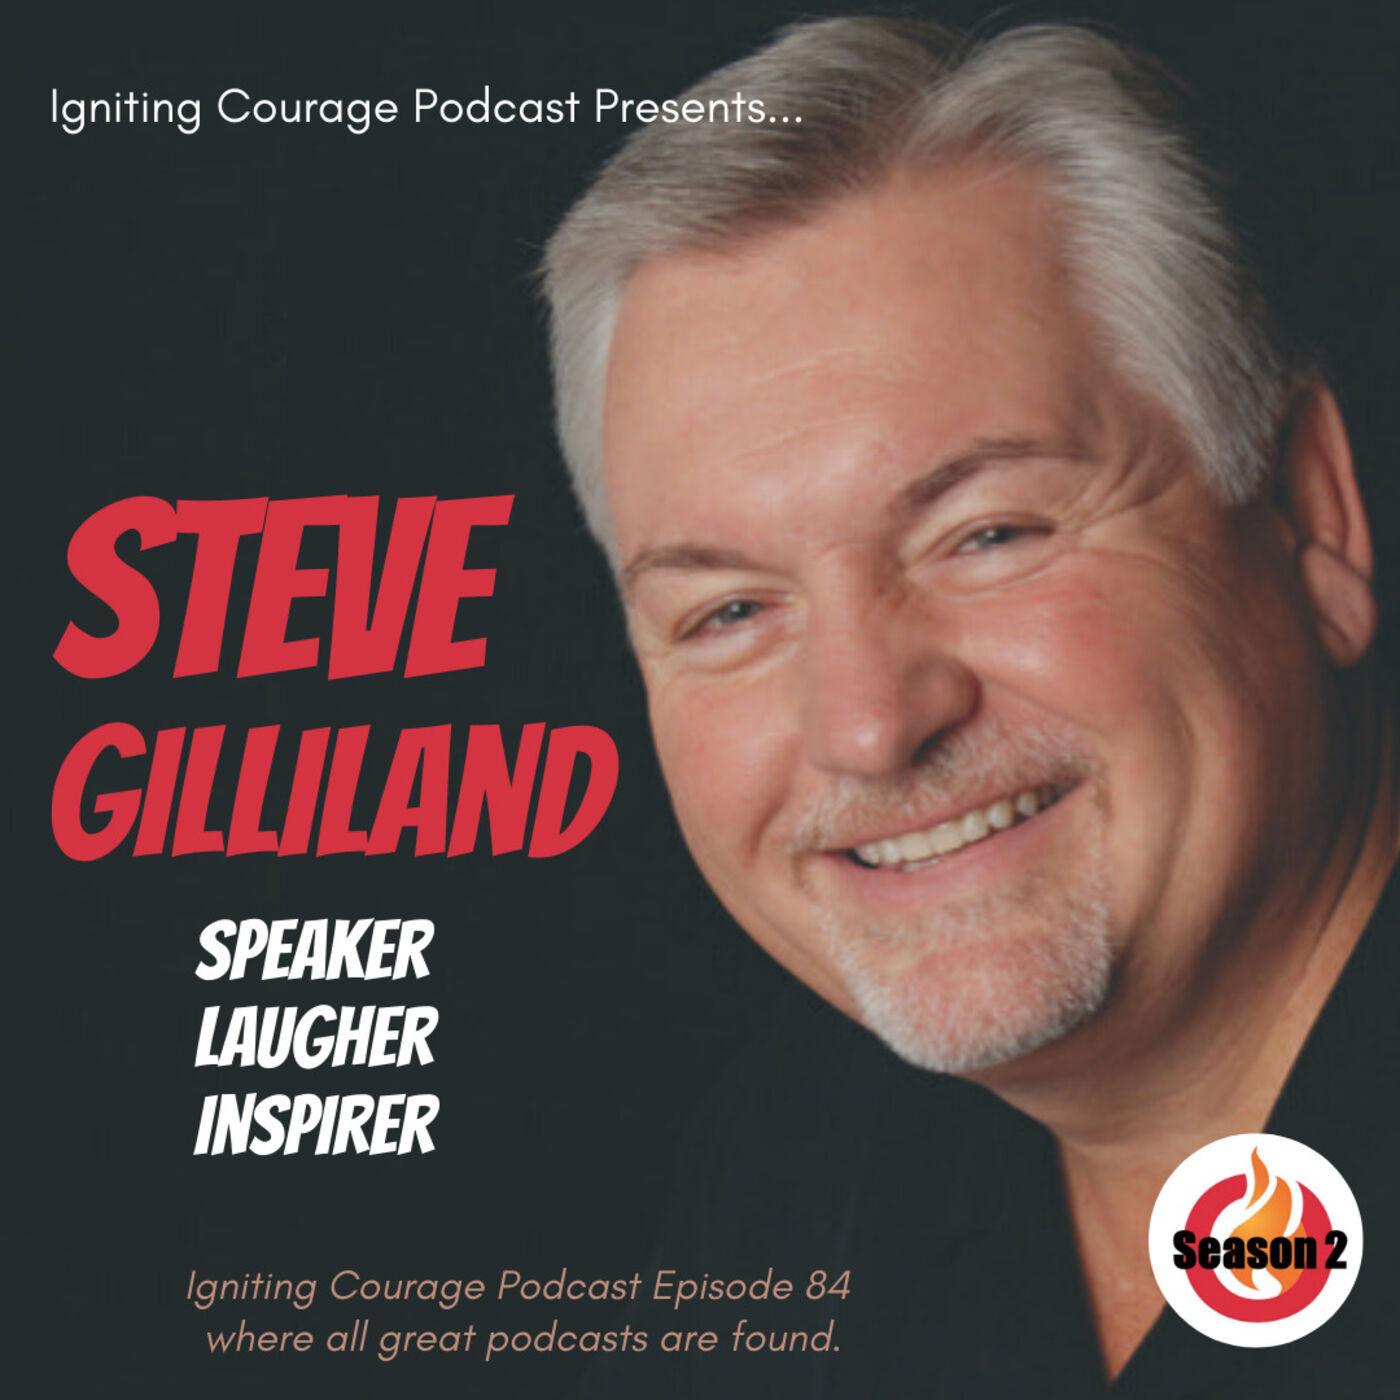 IGNITING COURAGE Podcast Episode 84: Steve Gilliand, Speaker, Laugher, Inspirer